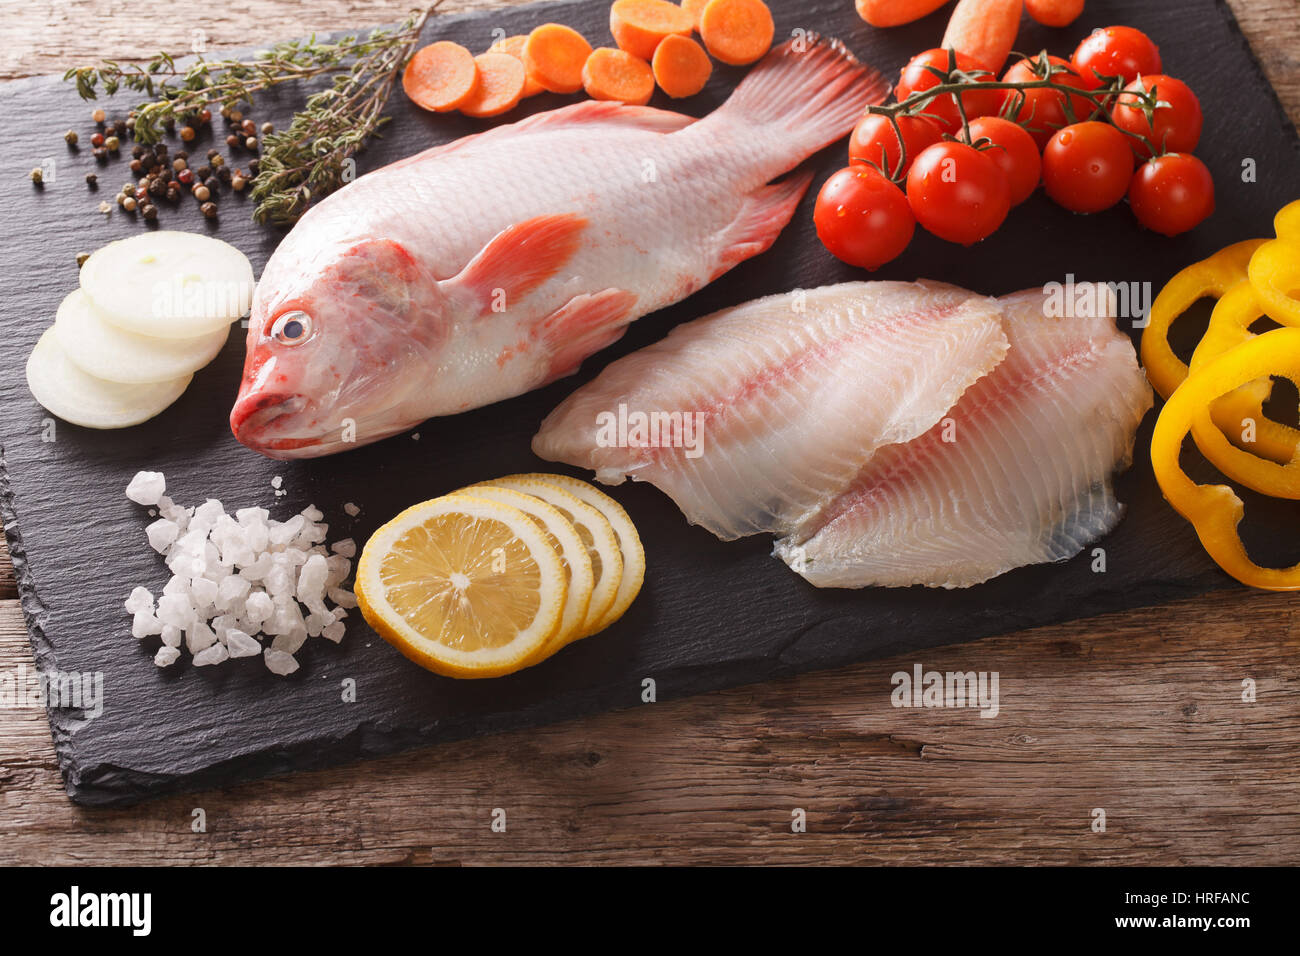 Raw whole tilapia, fillets and vegetable ingredients, spices close-up on the table. horizontal view from above - Stock Image